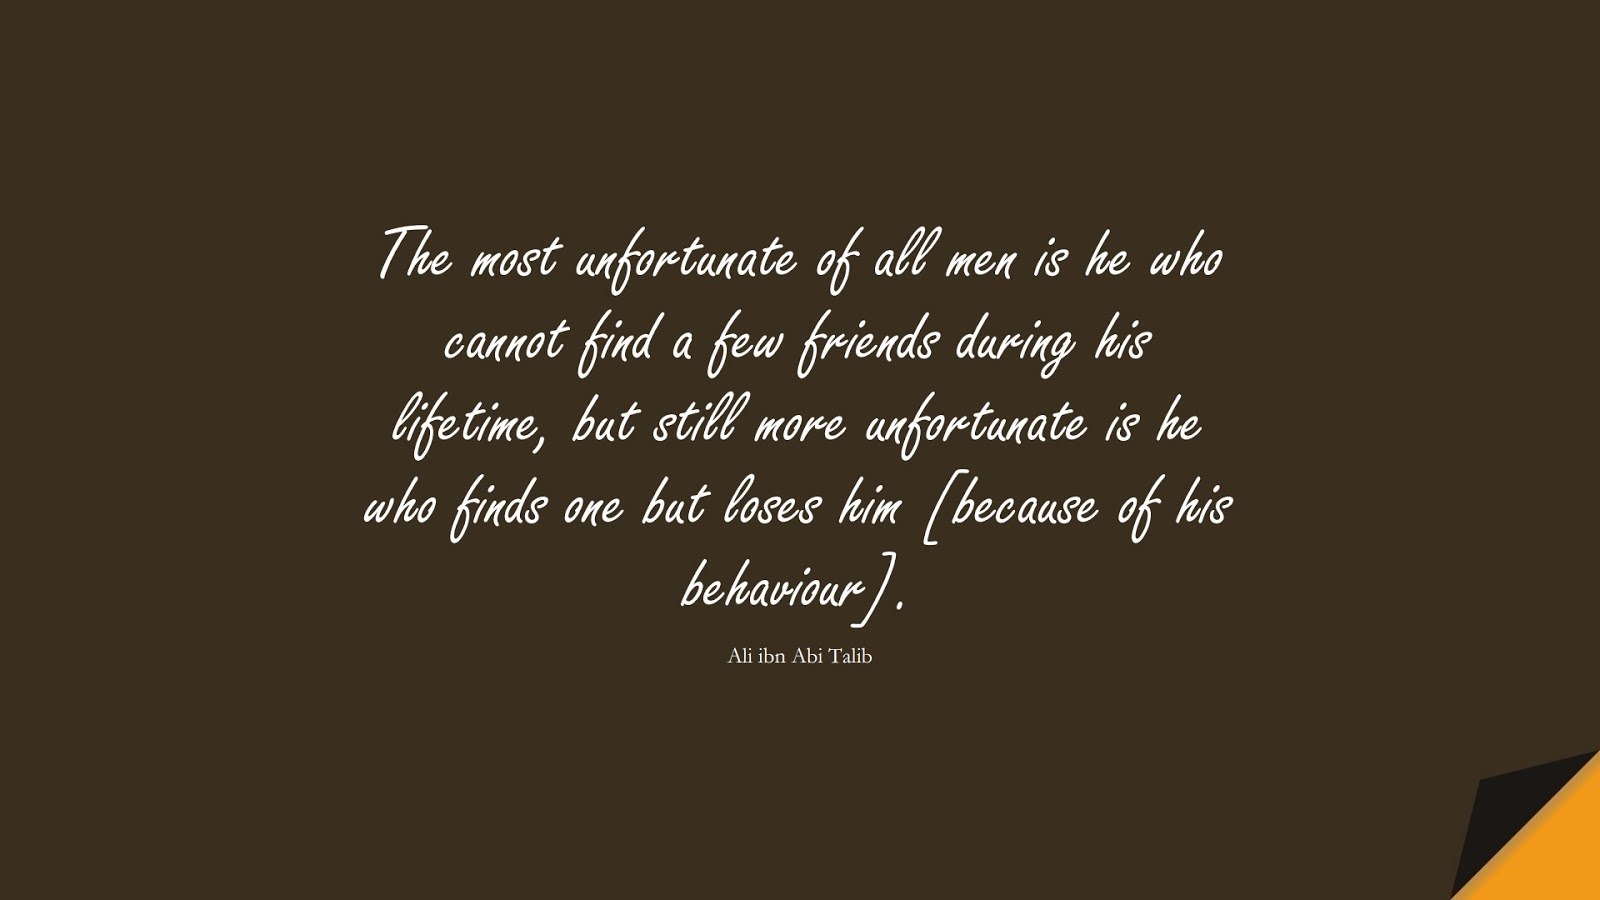 The most unfortunate of all men is he who cannot find a few friends during his lifetime, but still more unfortunate is he who finds one but loses him [because of his behaviour]. (Ali ibn Abi Talib);  #AliQuotes